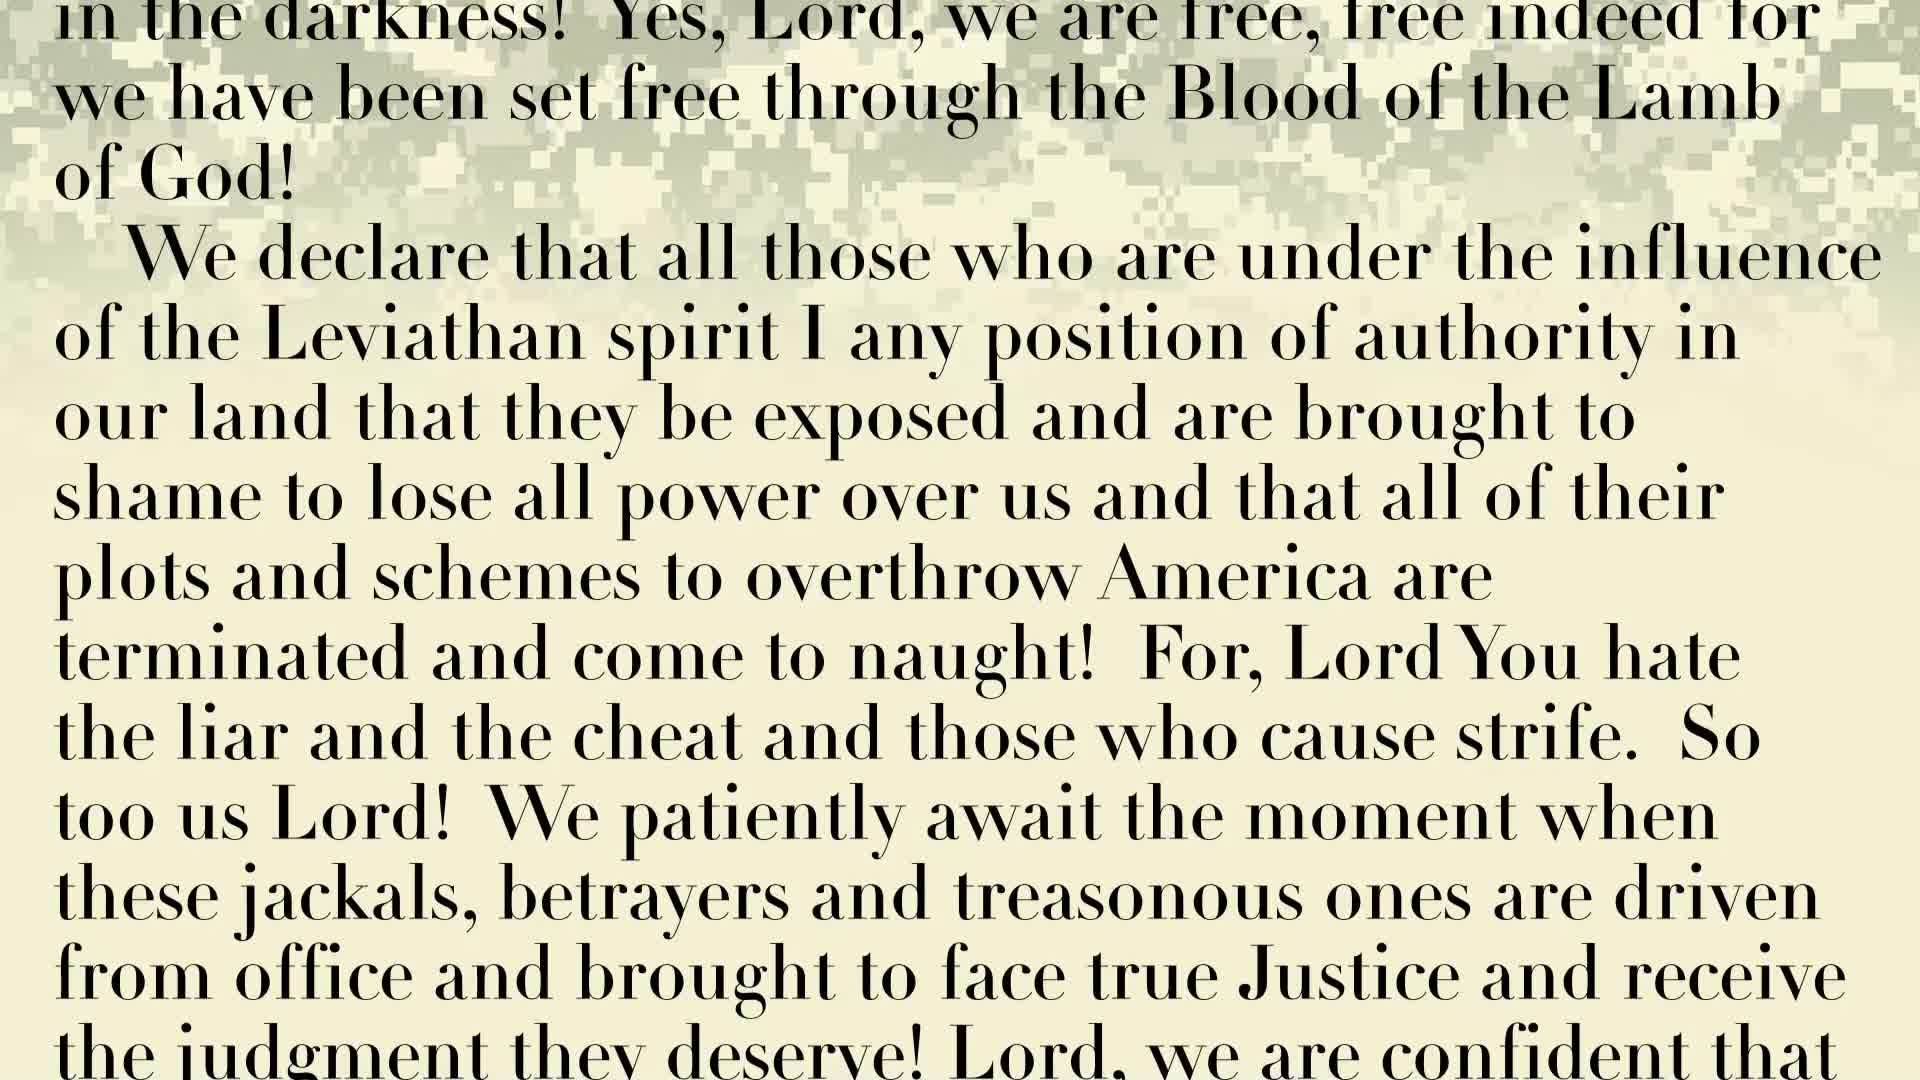 PRAYER FOCUS: OUR ORDERS ARE TO FIGHT THE LEVIATHAN SPIRIT IN OUR NATION, OUR STATES, OUR HOMES AND OURSELVES!